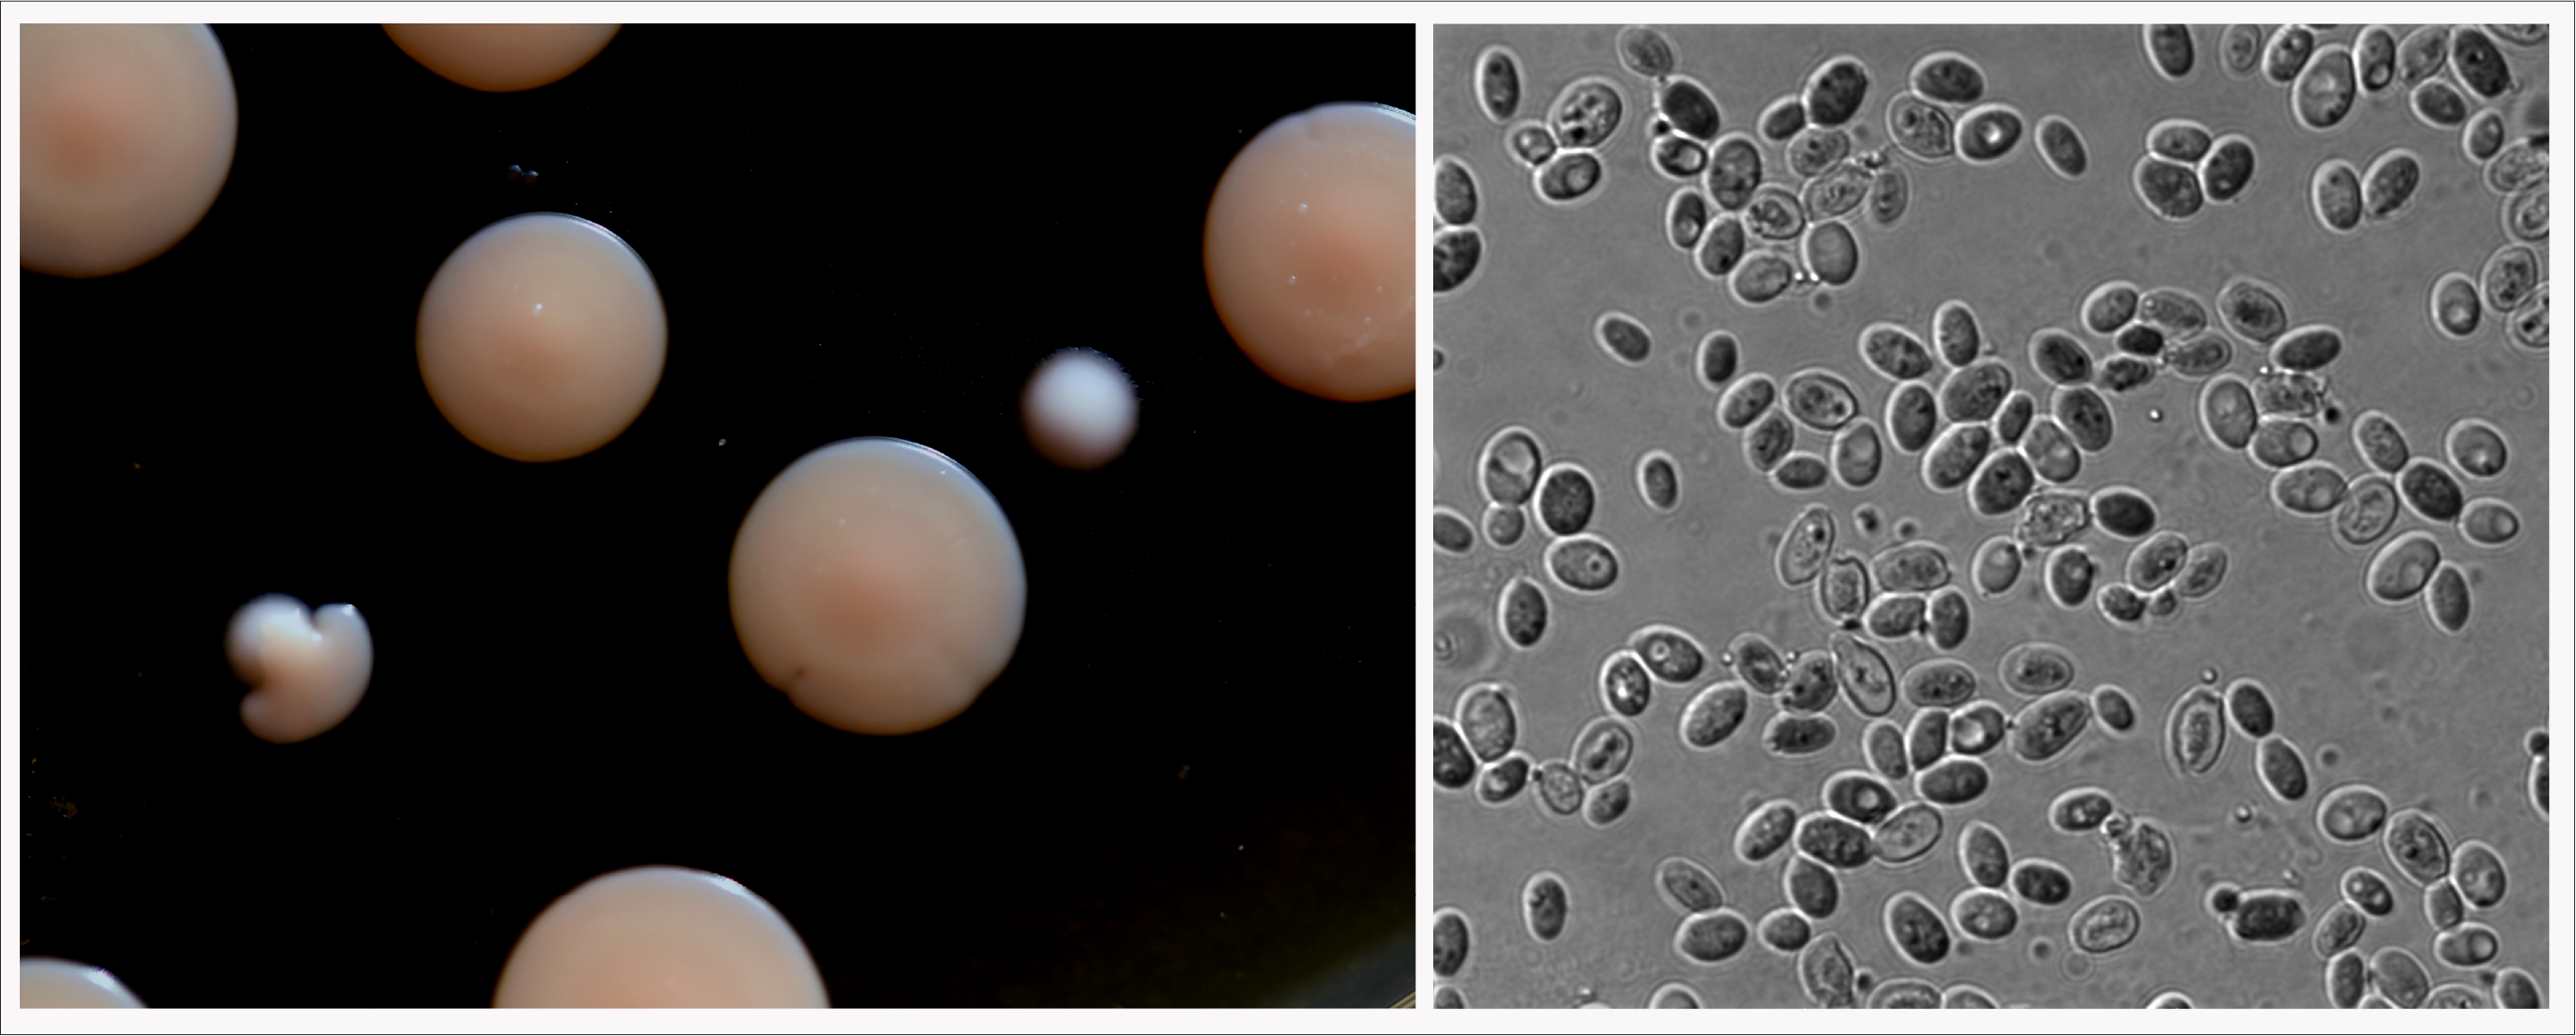 Left: K. barnettii  growing as colonies.  Both the large pink colonies and the small white colonies are K. barnettii  Right: K. barnettii cells at magnification.